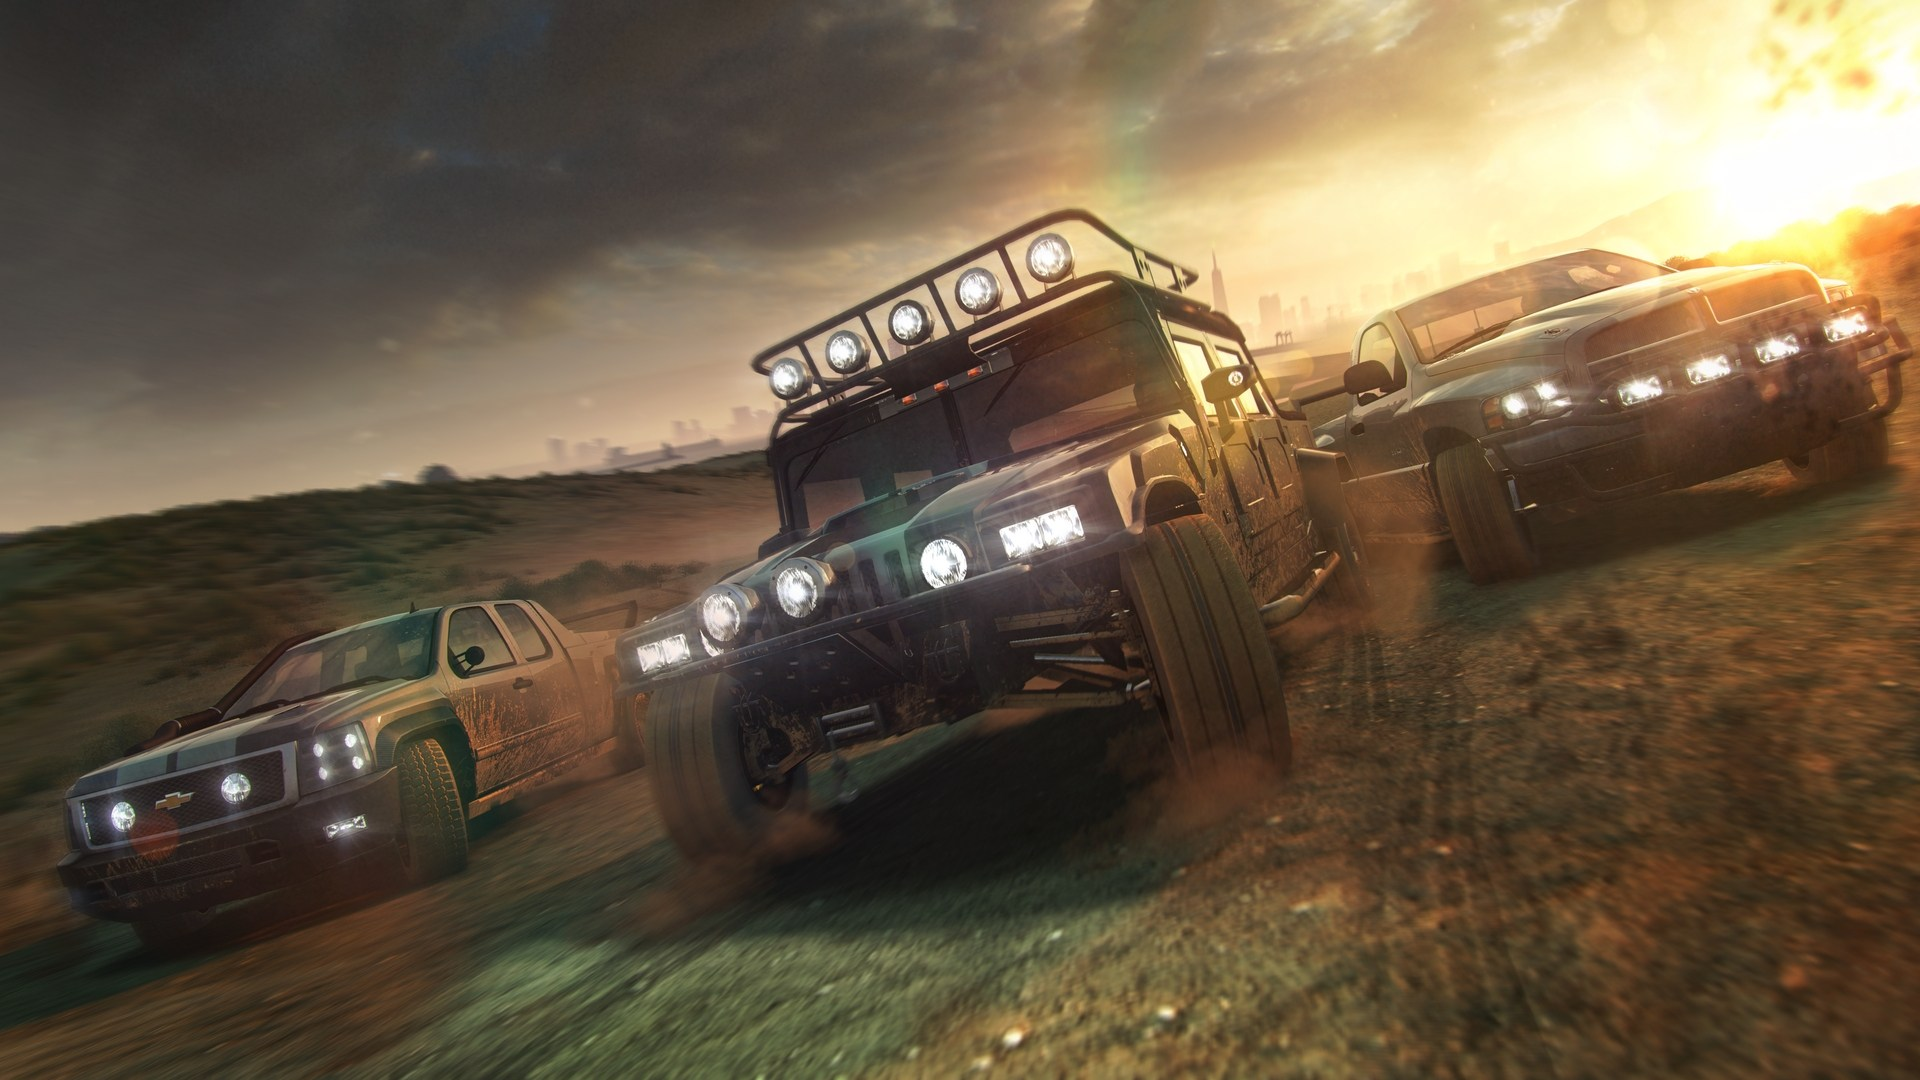 15 Things You Need To Know Before You Buy The Crew 2 | Page 4